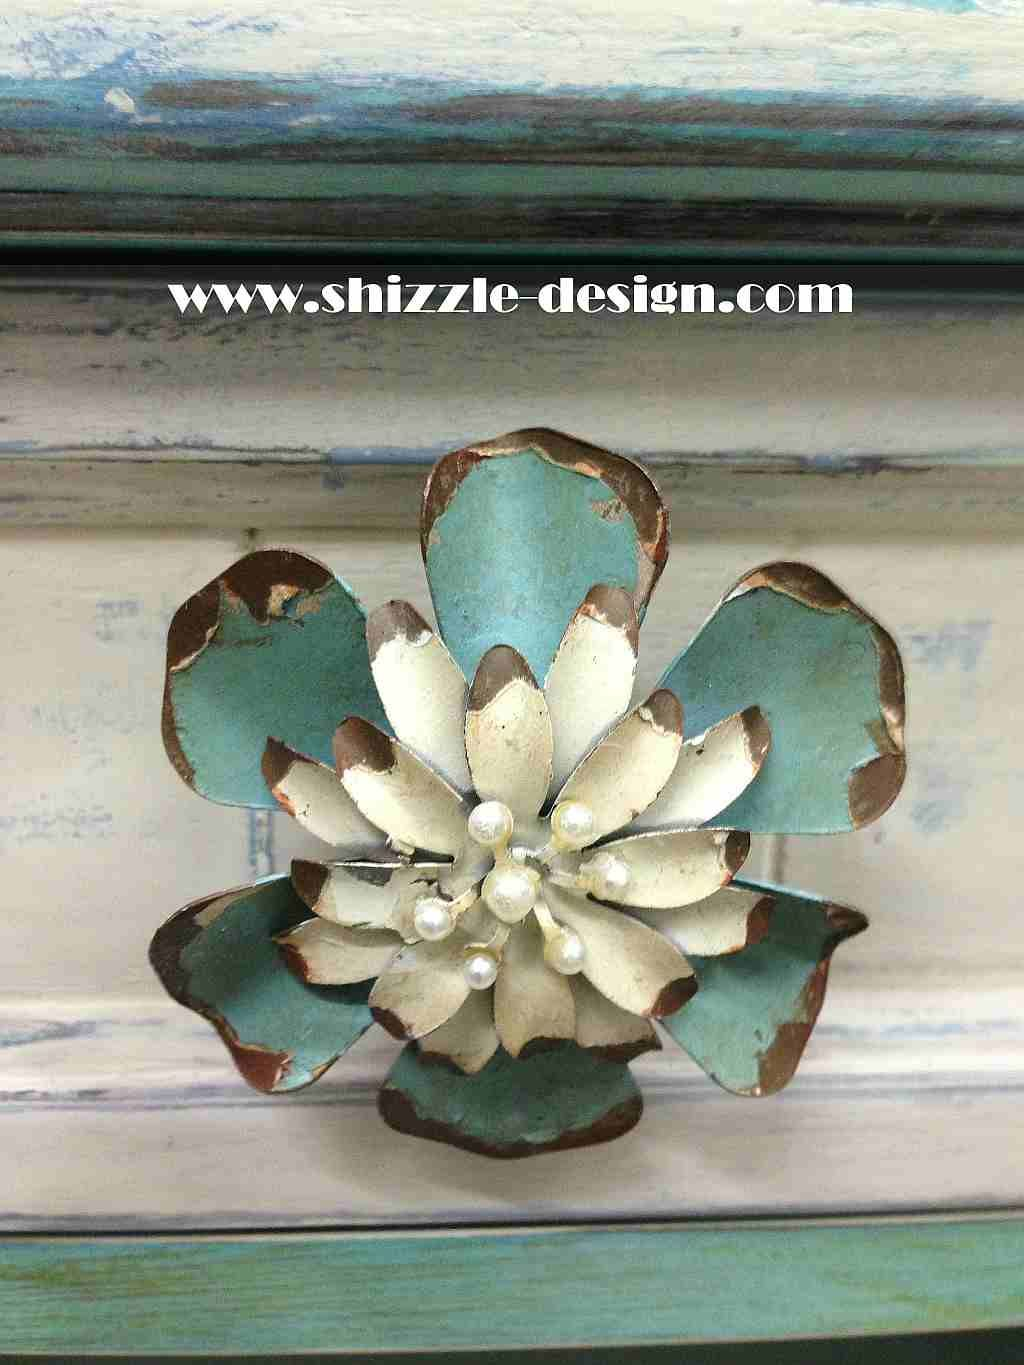 Best Whimsical Turquoise Coffee Table W A Little Bling 400 x 300